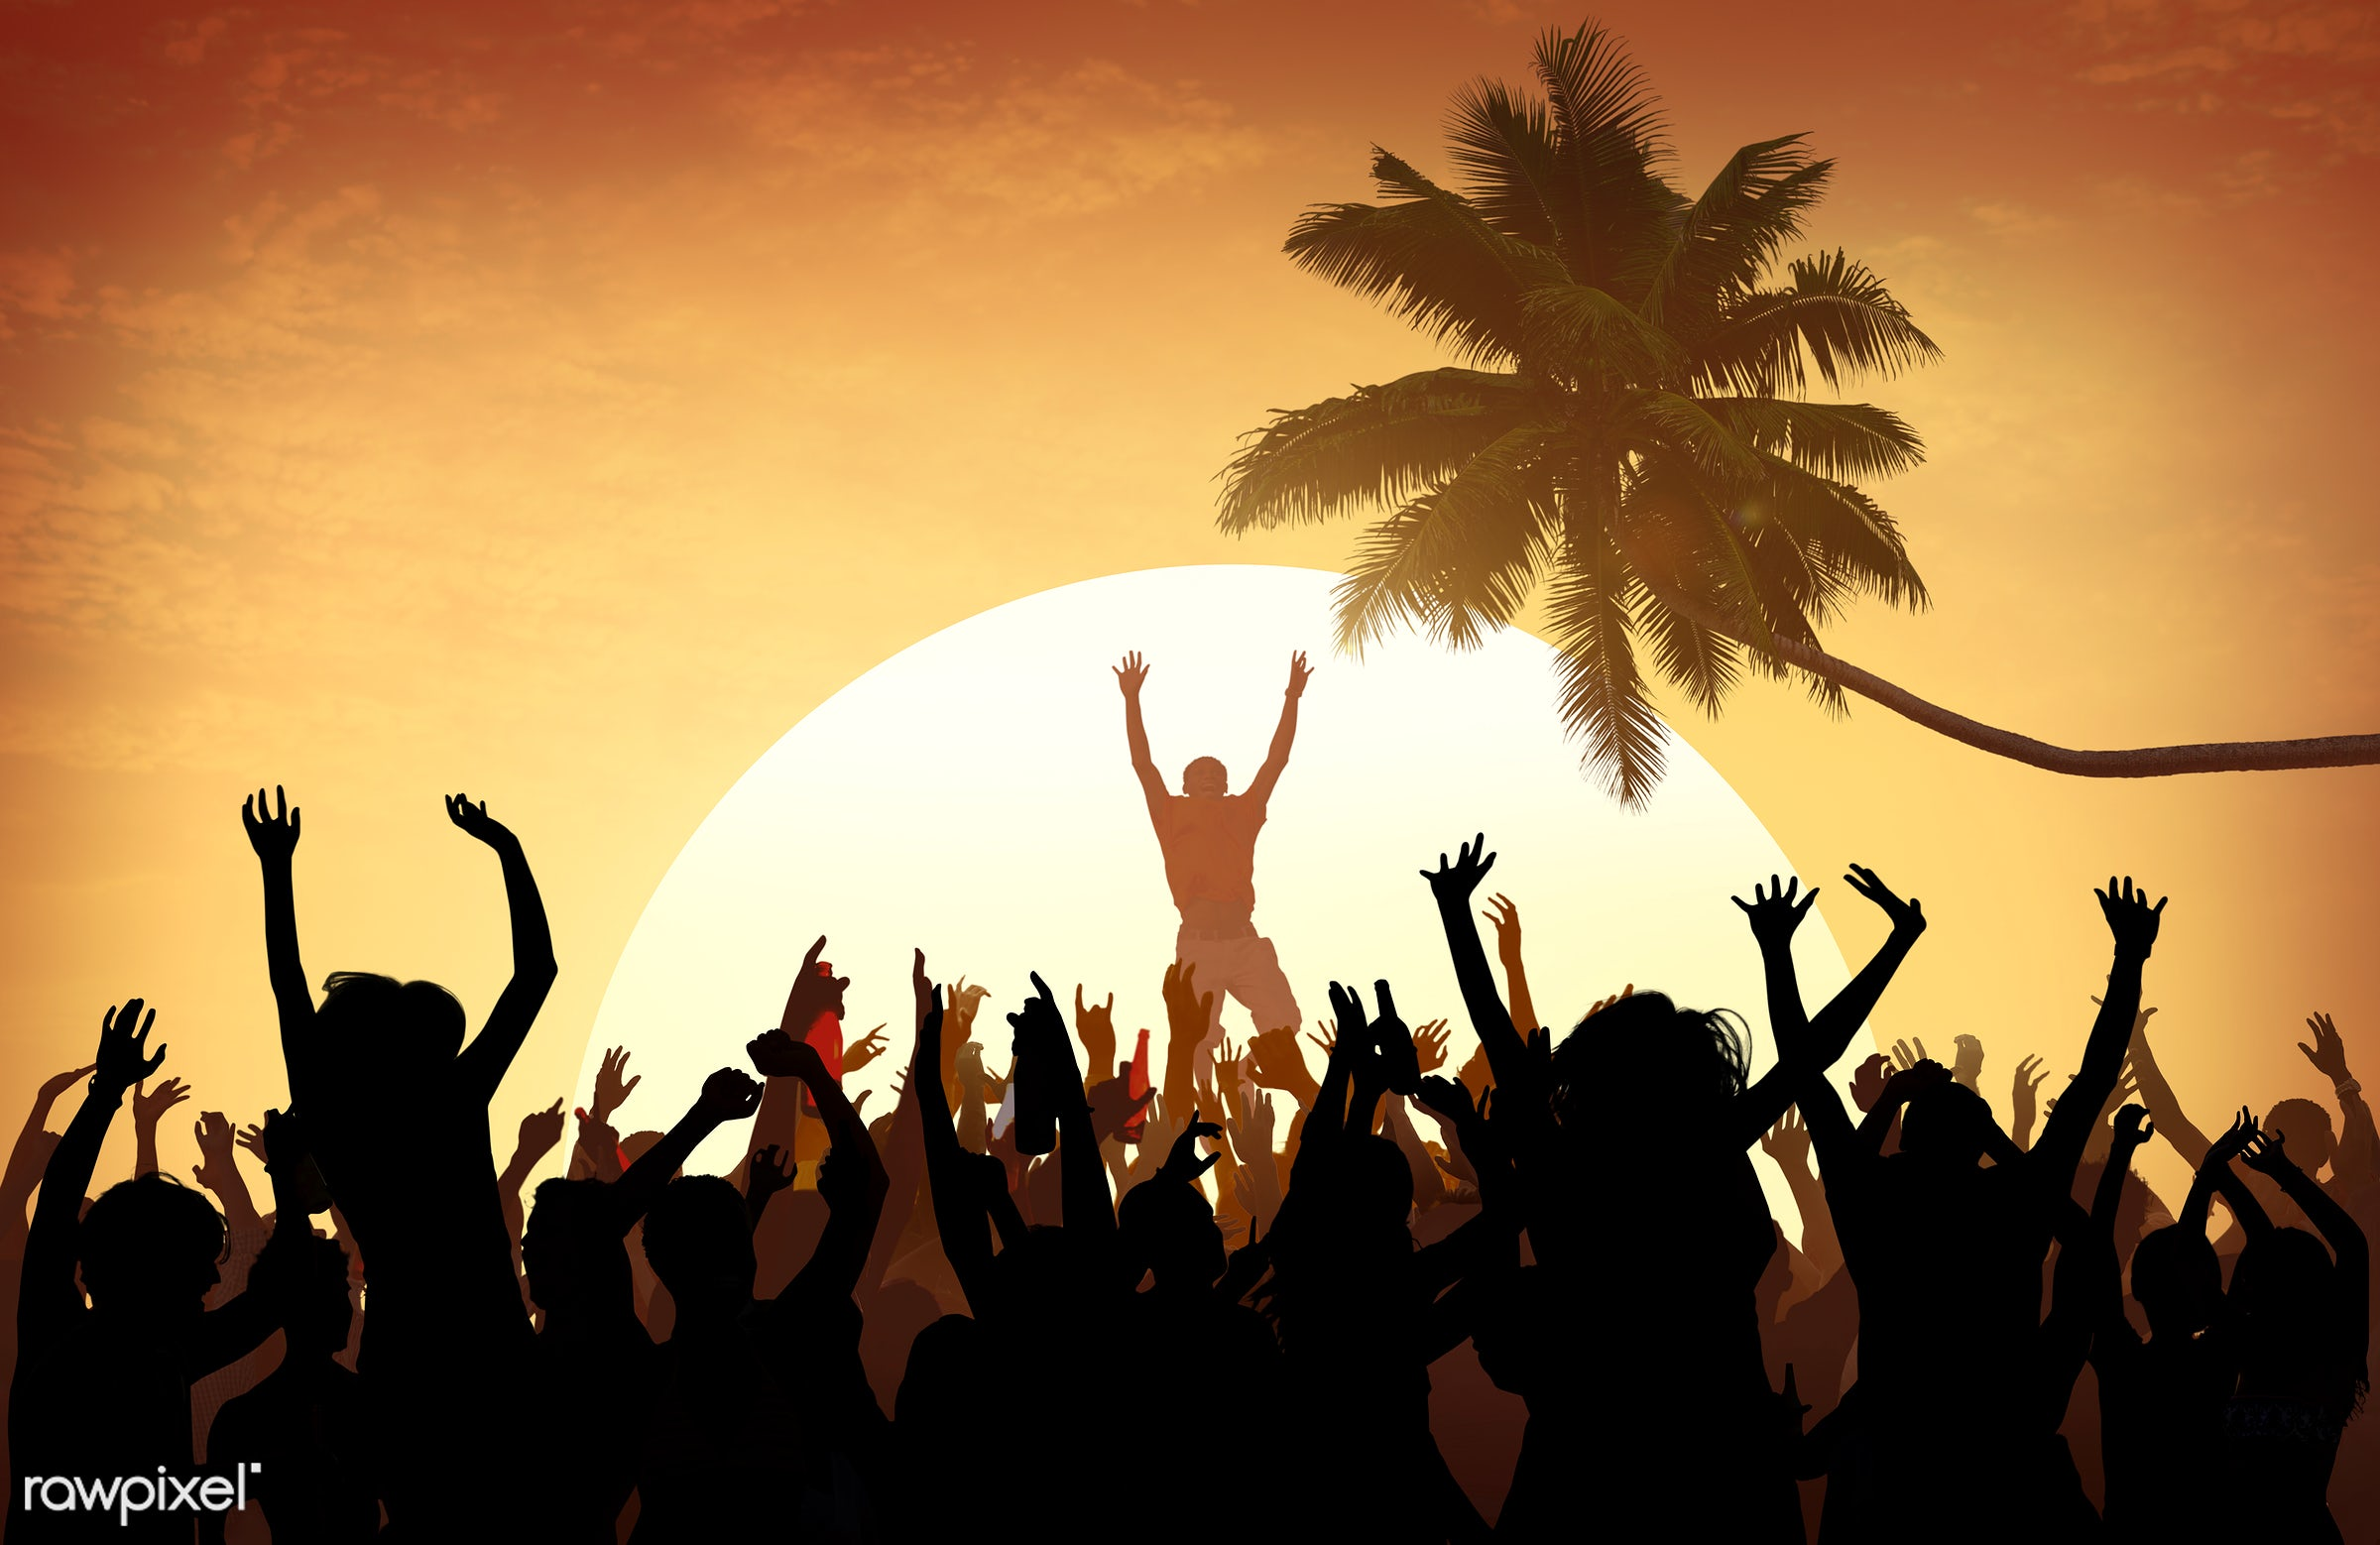 concert, adolescence, arms outstretched, arms raised, audience, back lit, beach, carefree, celebration, cheerful, coconut...